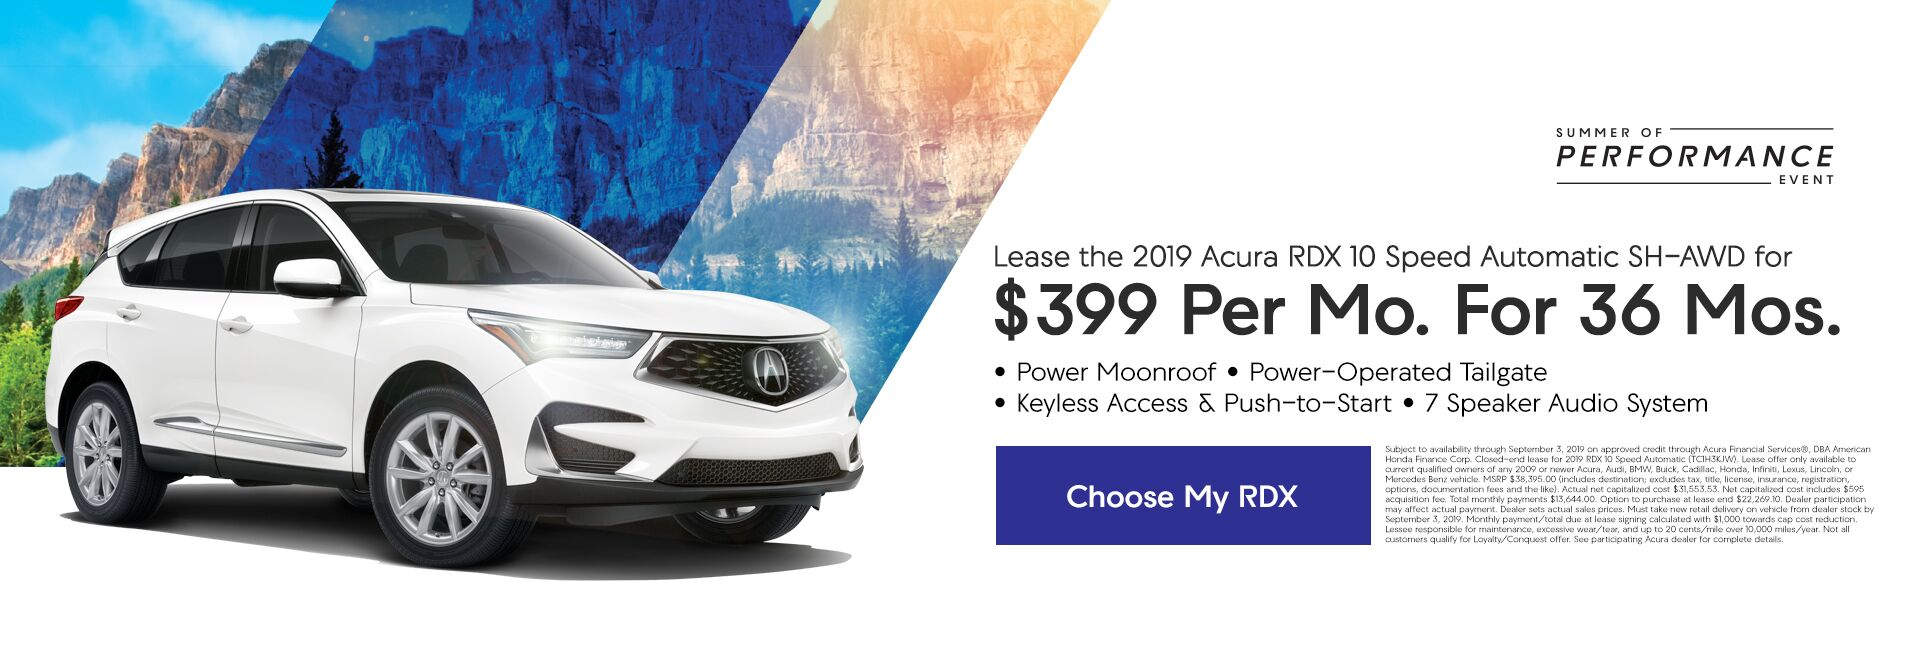 Lease the 2019 Acura RDX during the Summer of Performance event. Expires 9/3/19